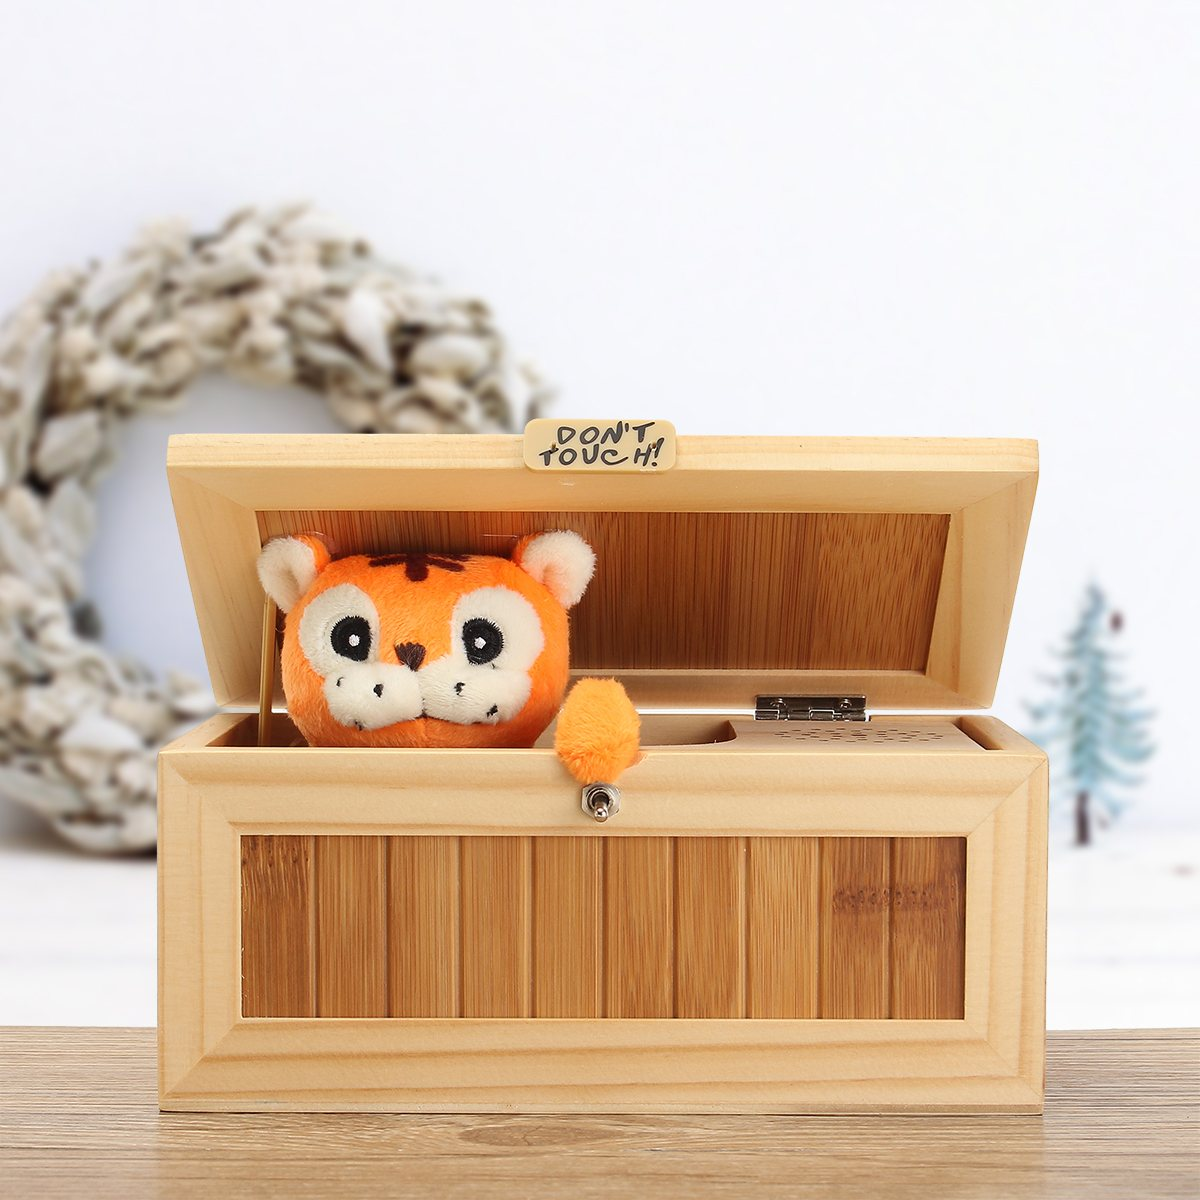 Wooden Useless Box Leave Me Alone Most Machine Don't Touch Tiger Toy Gifts Joke Toy Leave Me Alone Novel Box Funny Machine neje wooden useless fully assembled machine box toy brown 2 x aa